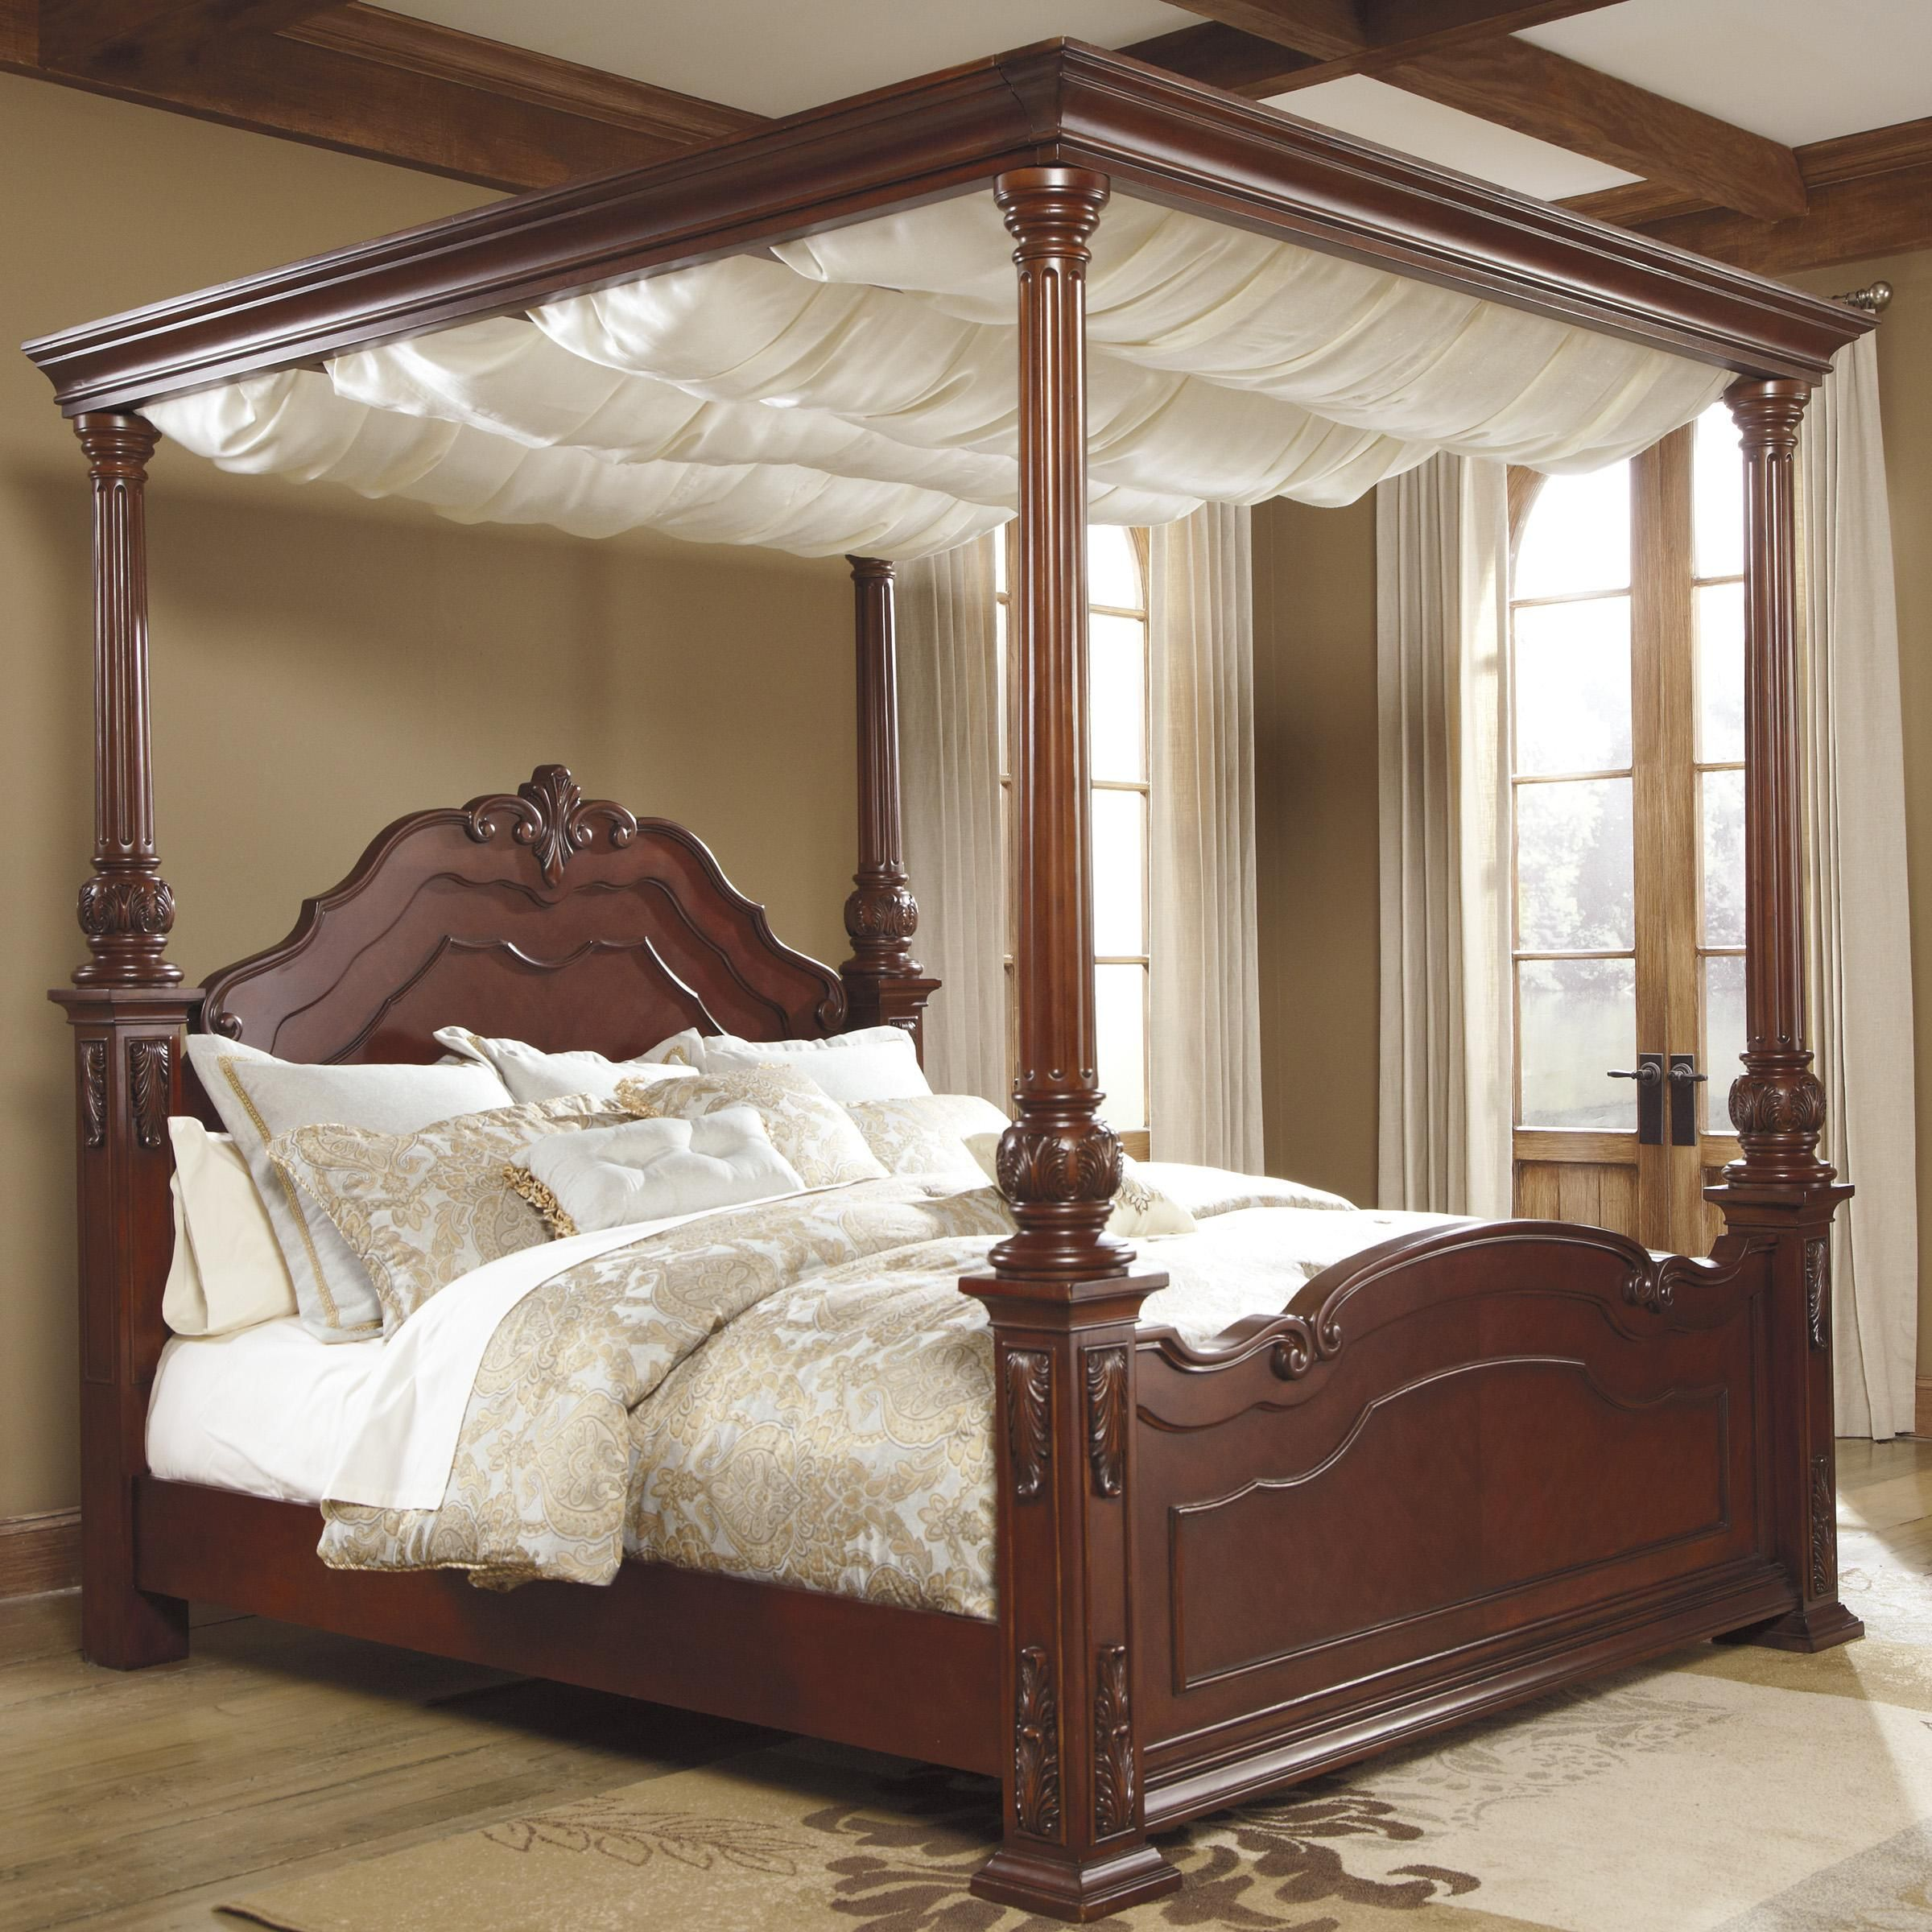 stunning drapes canopy this bed bedroom probably curtains popular design box is full above